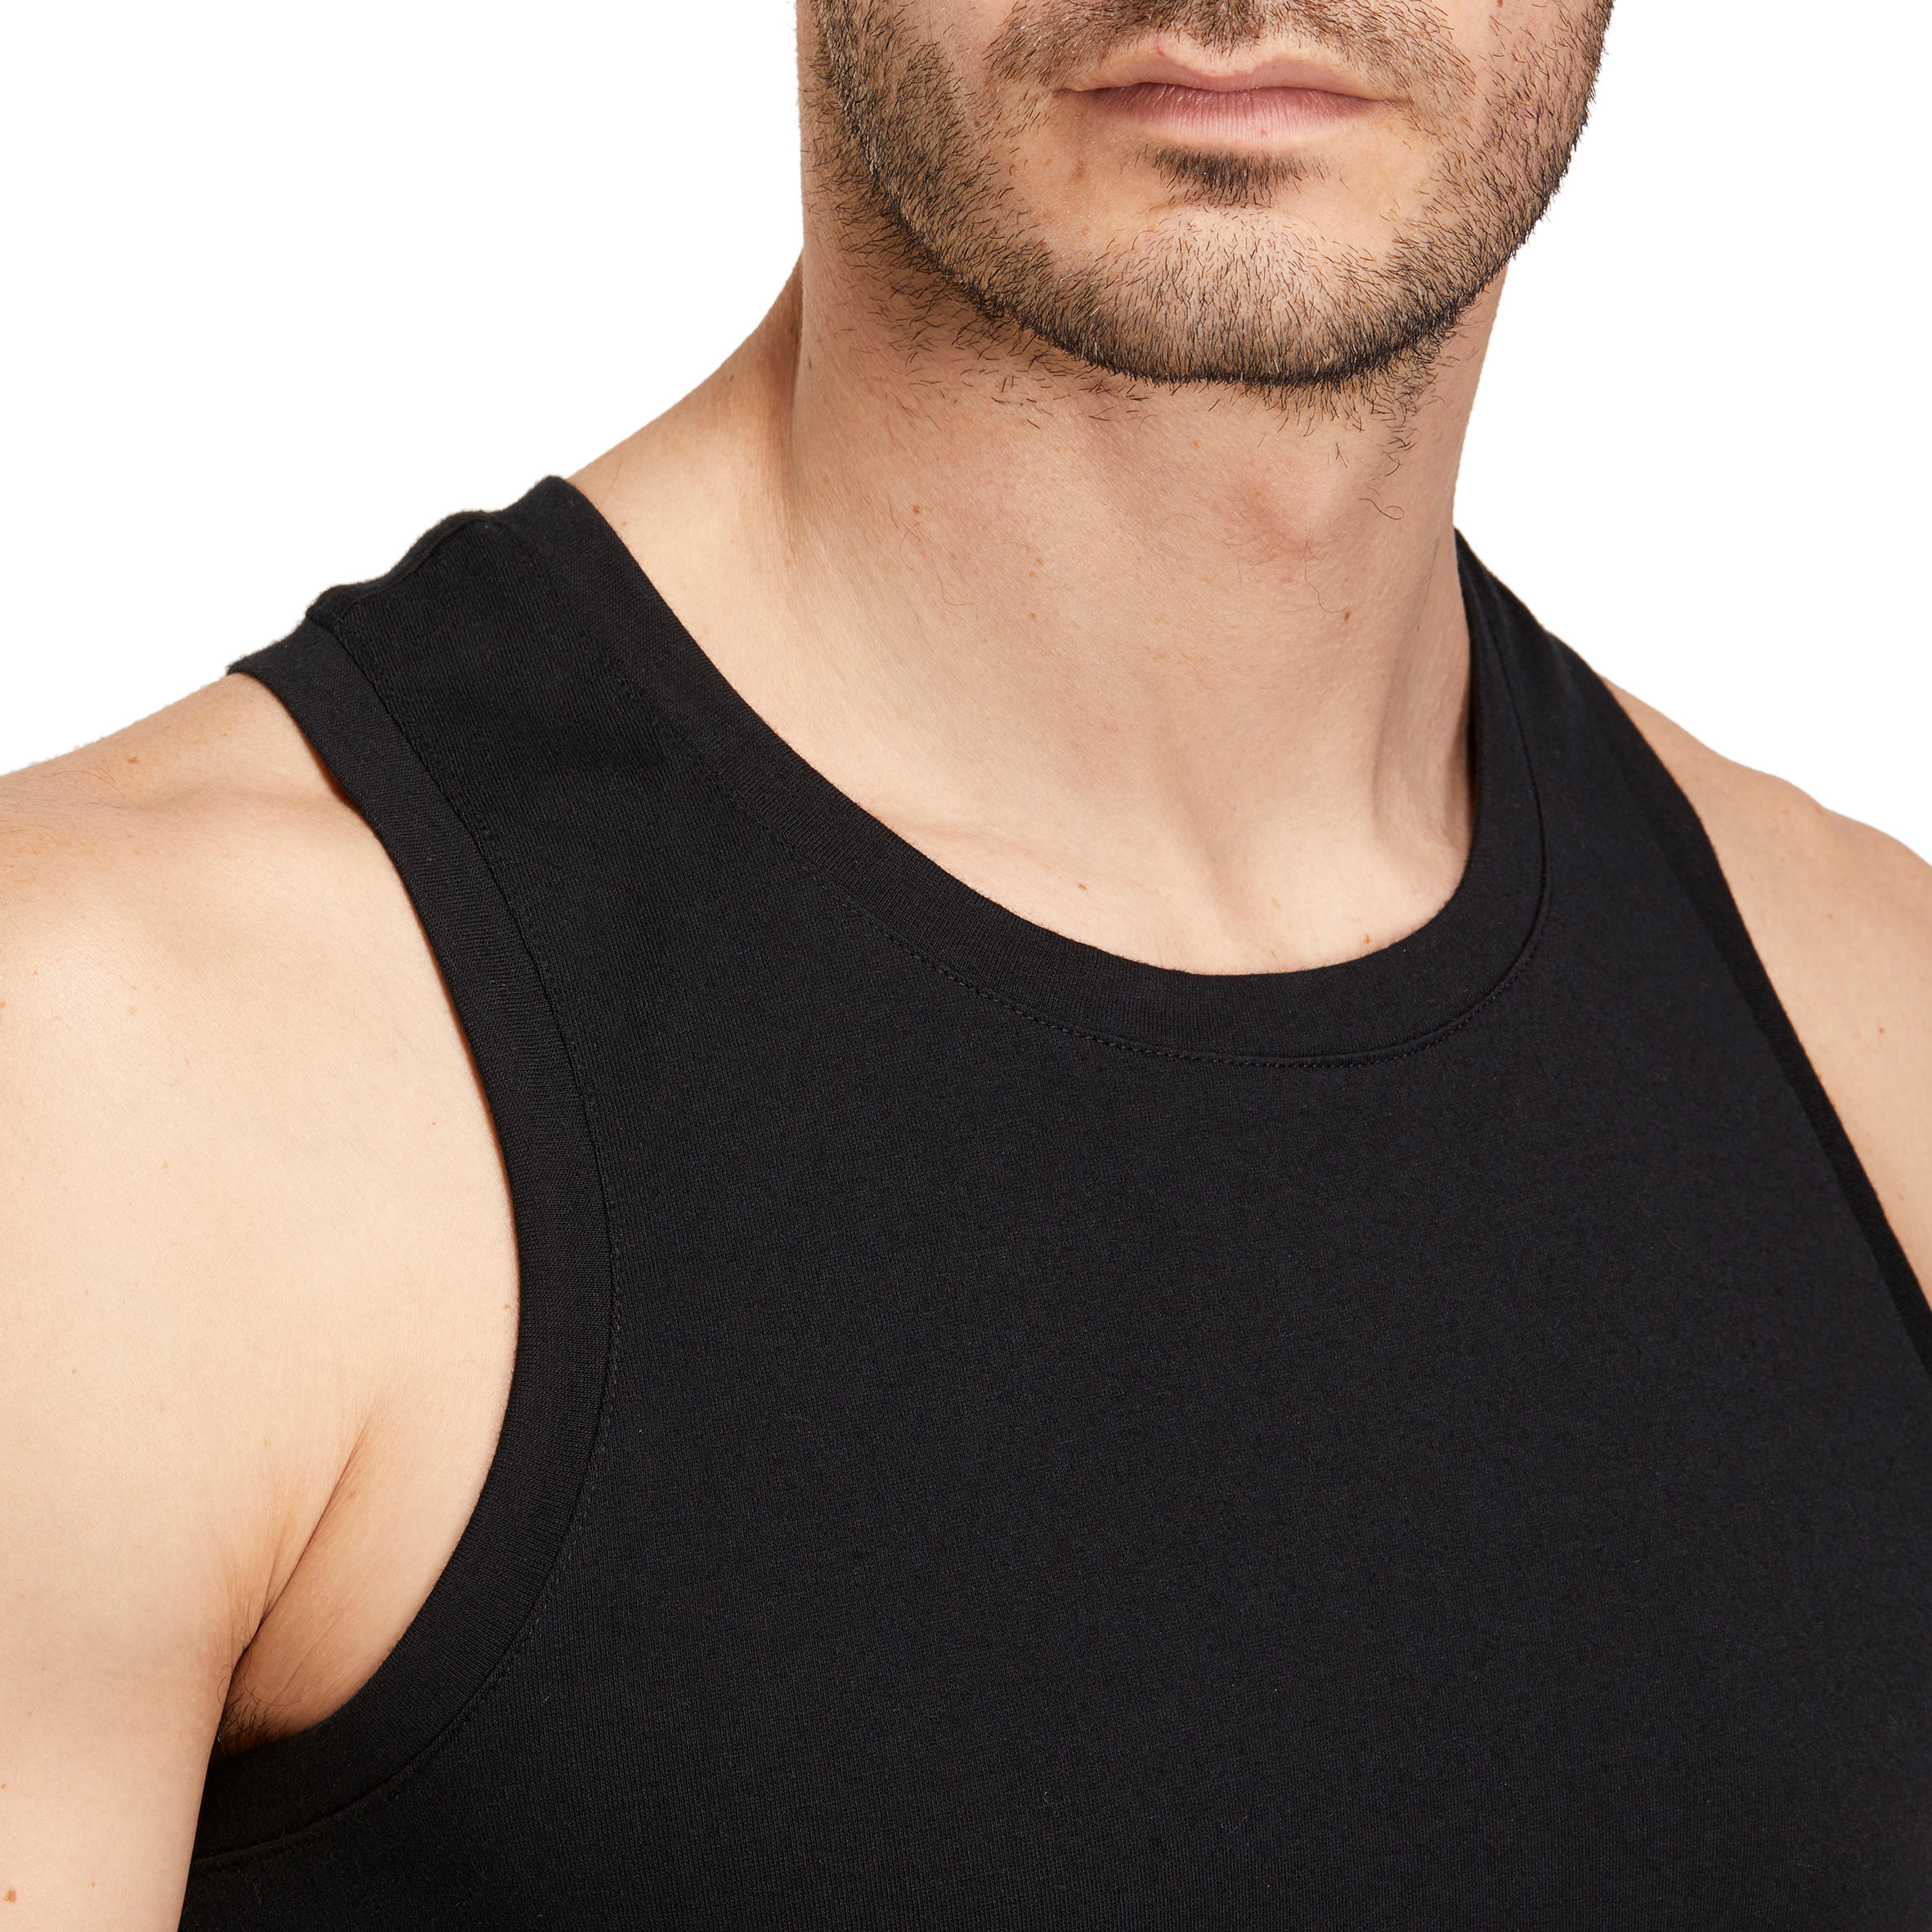 500 Regular-Fit Gentle Gym & Pilates Tank Top - Black